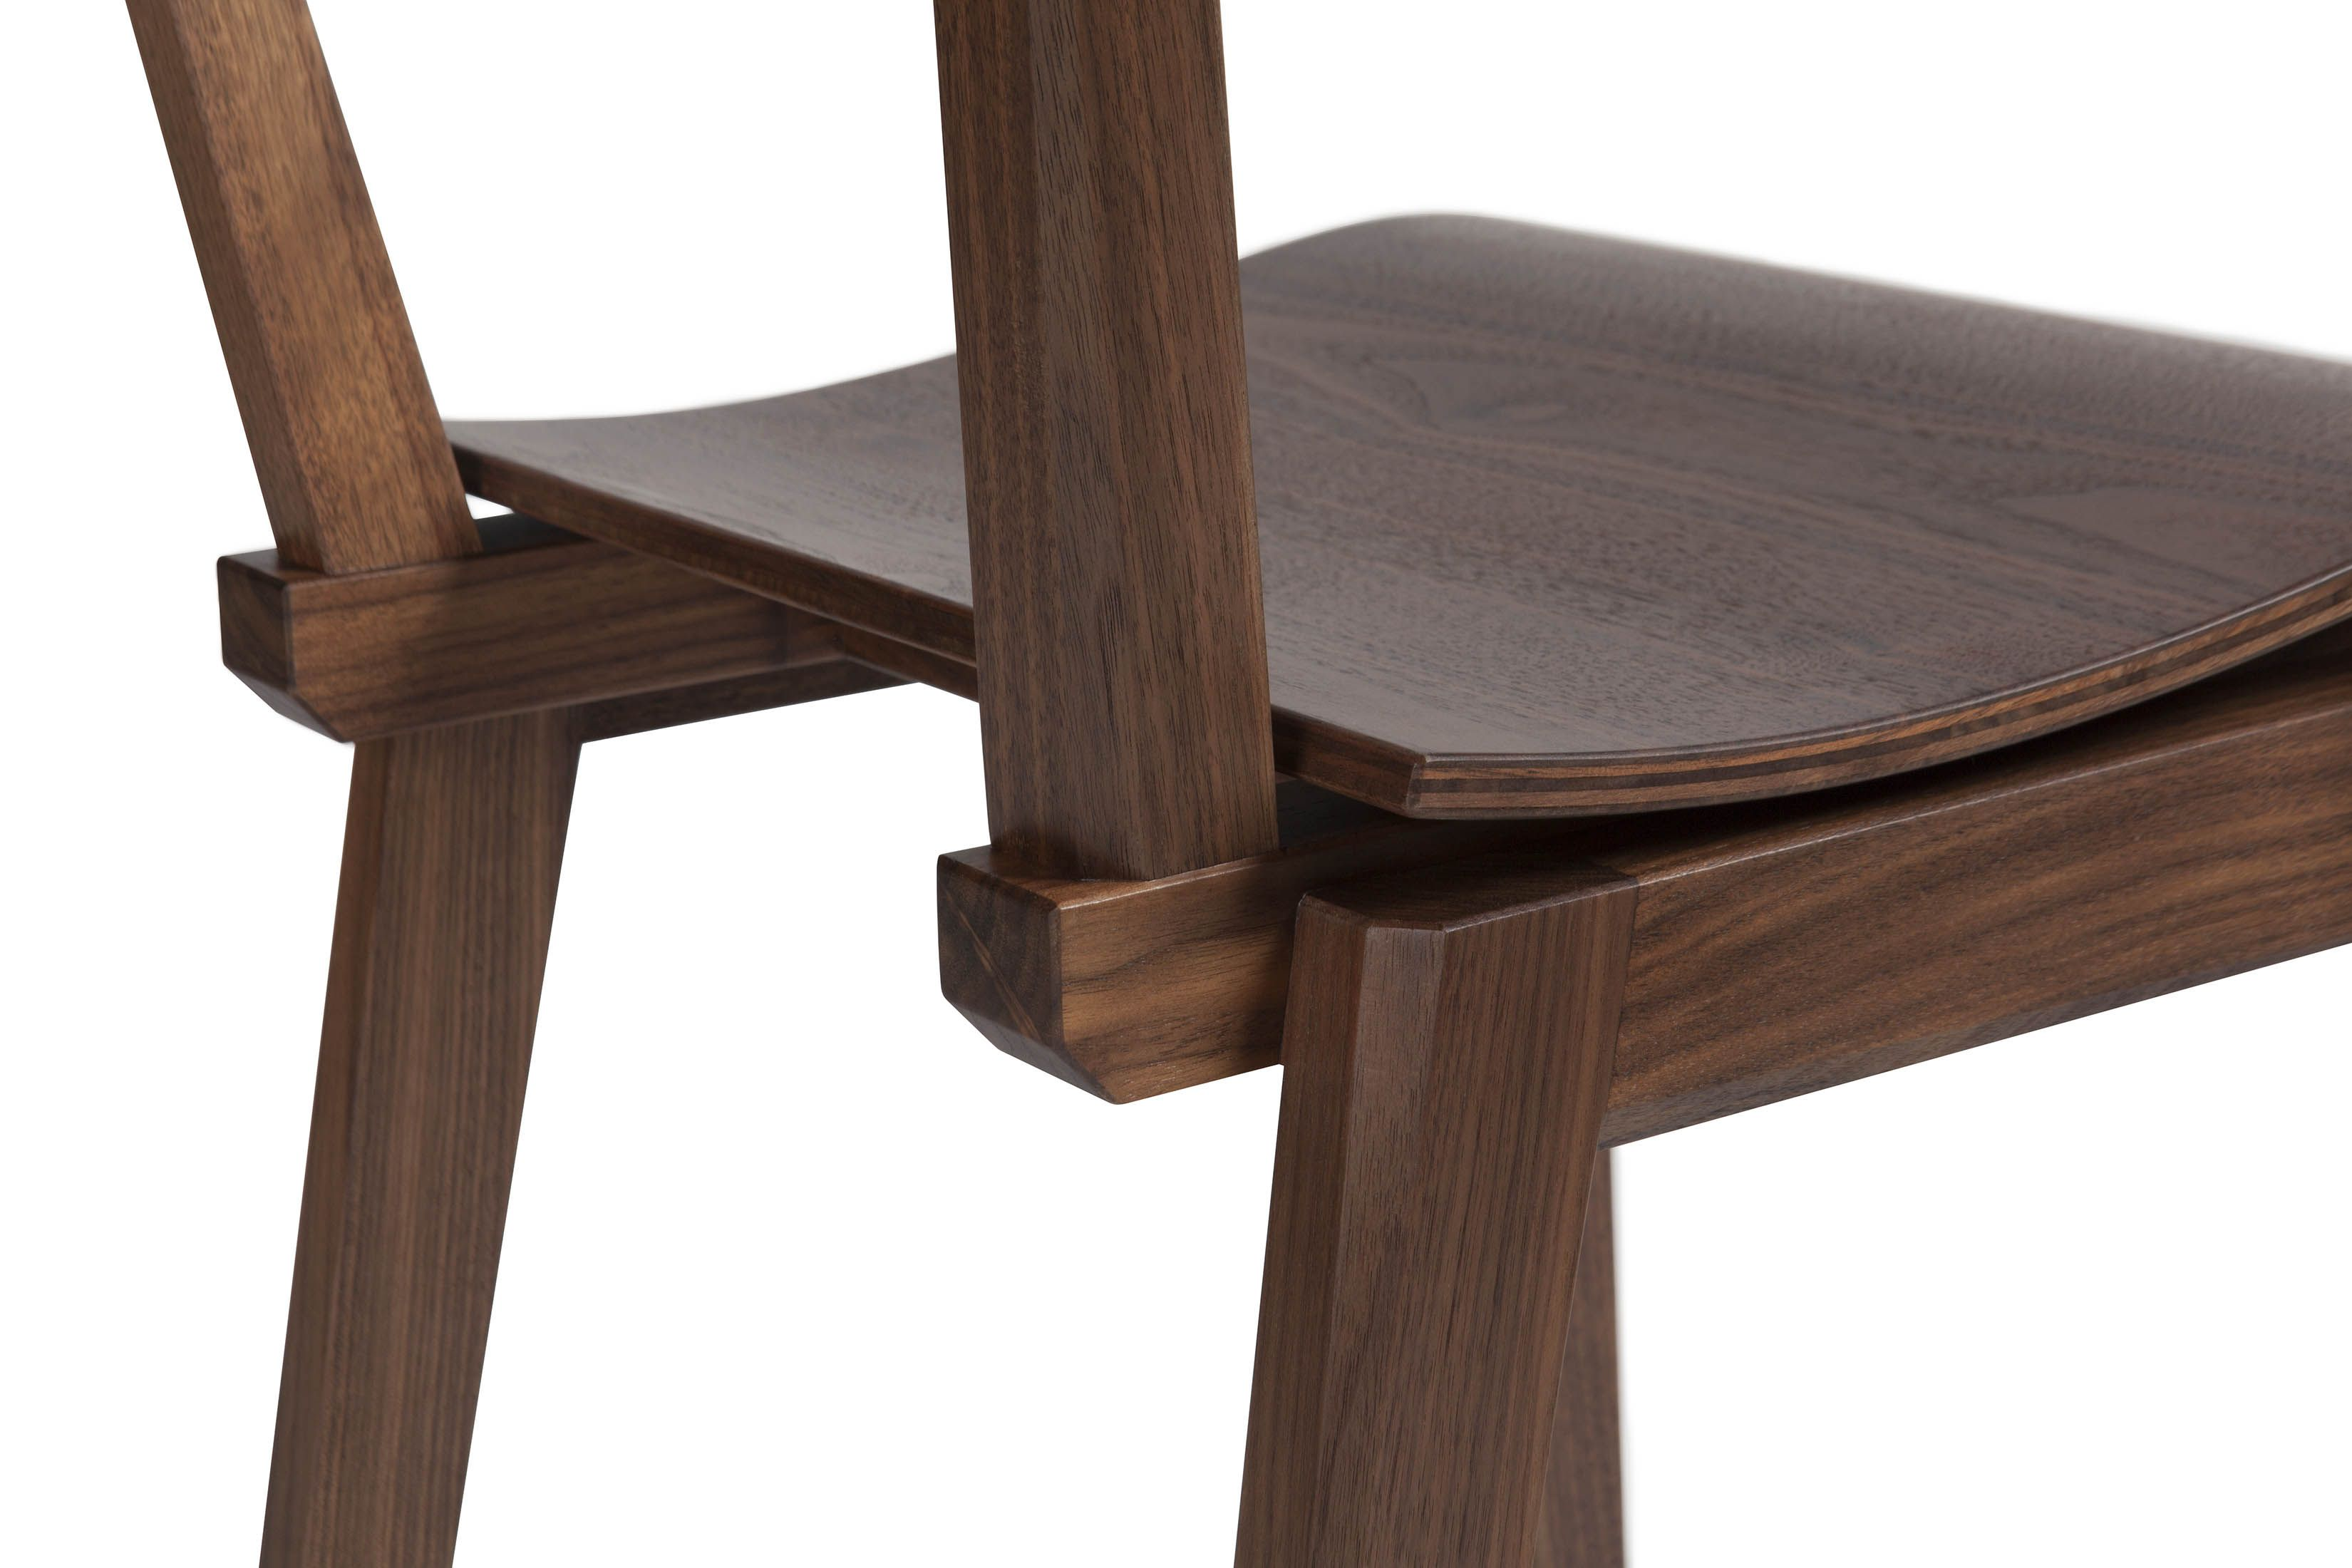 Walnut Chair Joinery Details Walnut Chair Chair Joinery Details